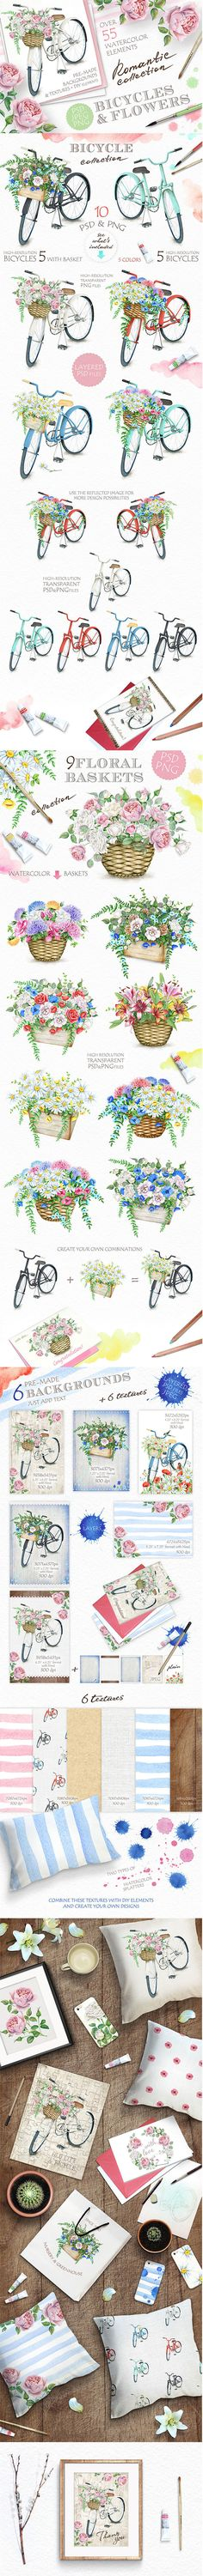 creative-designers-illustration-kit-20a